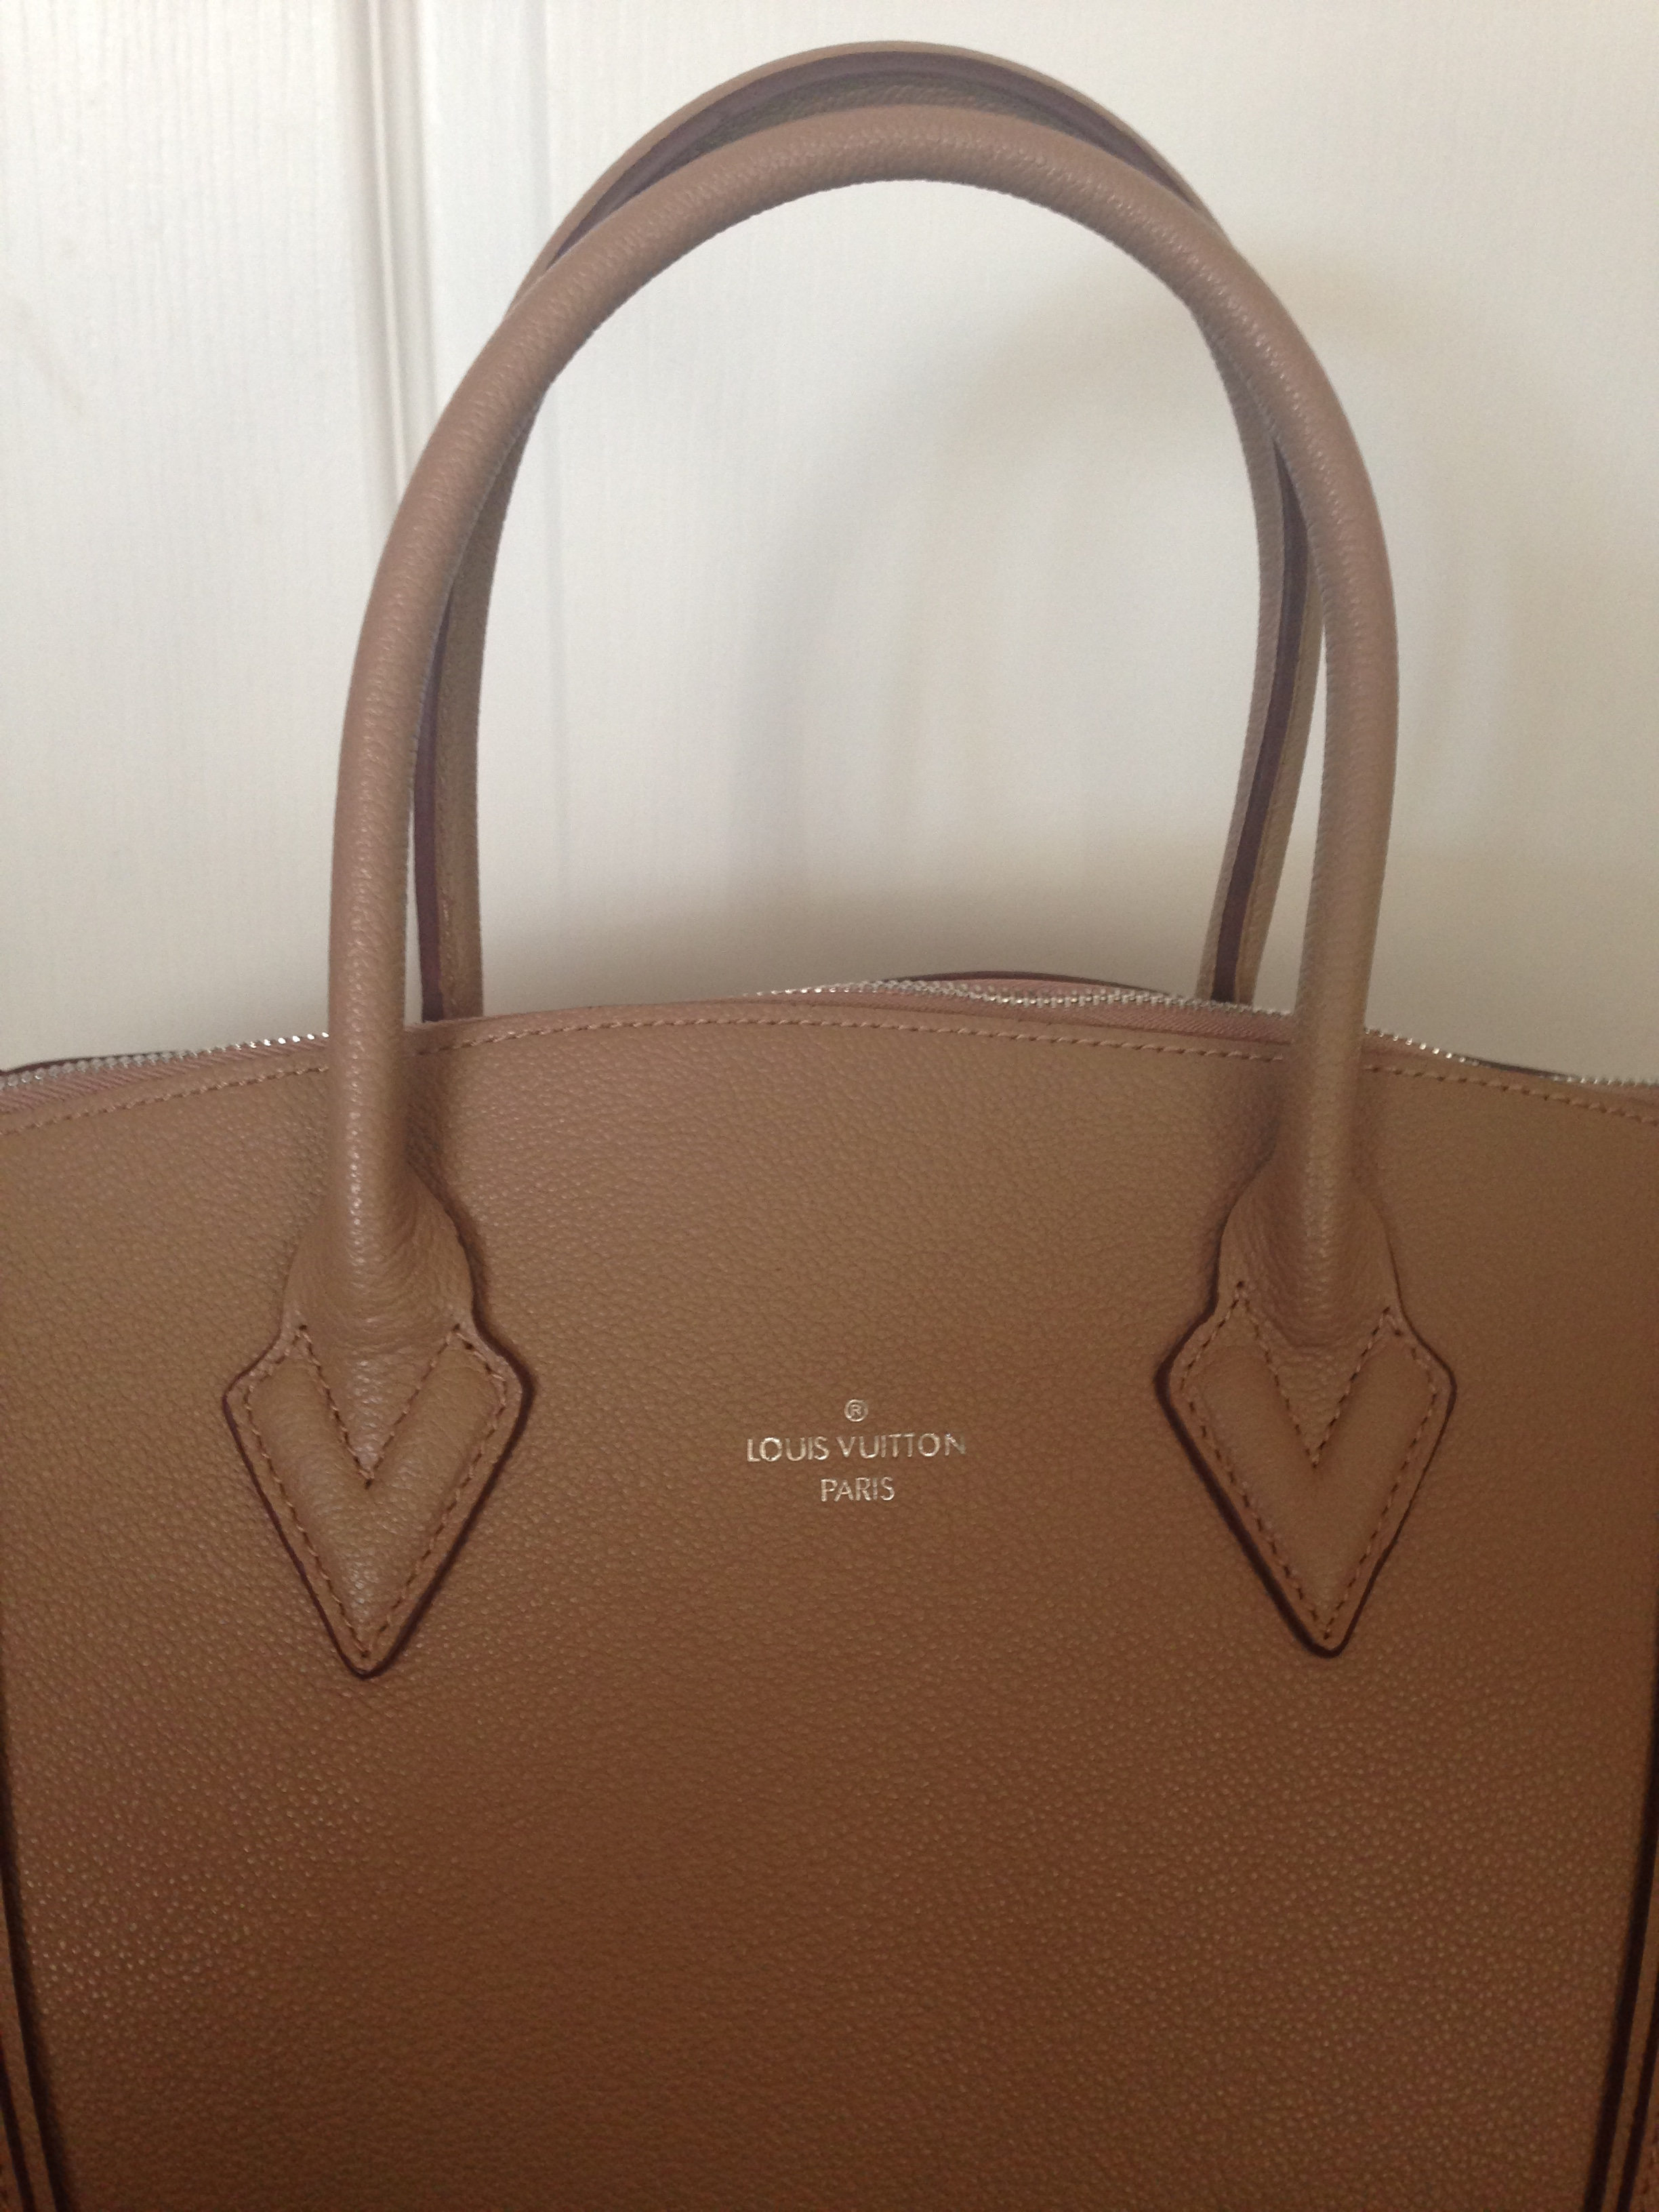 celine phantom brown - Louis Vuitton Soft Lockit Replica Handbag Review �C Authentic ...